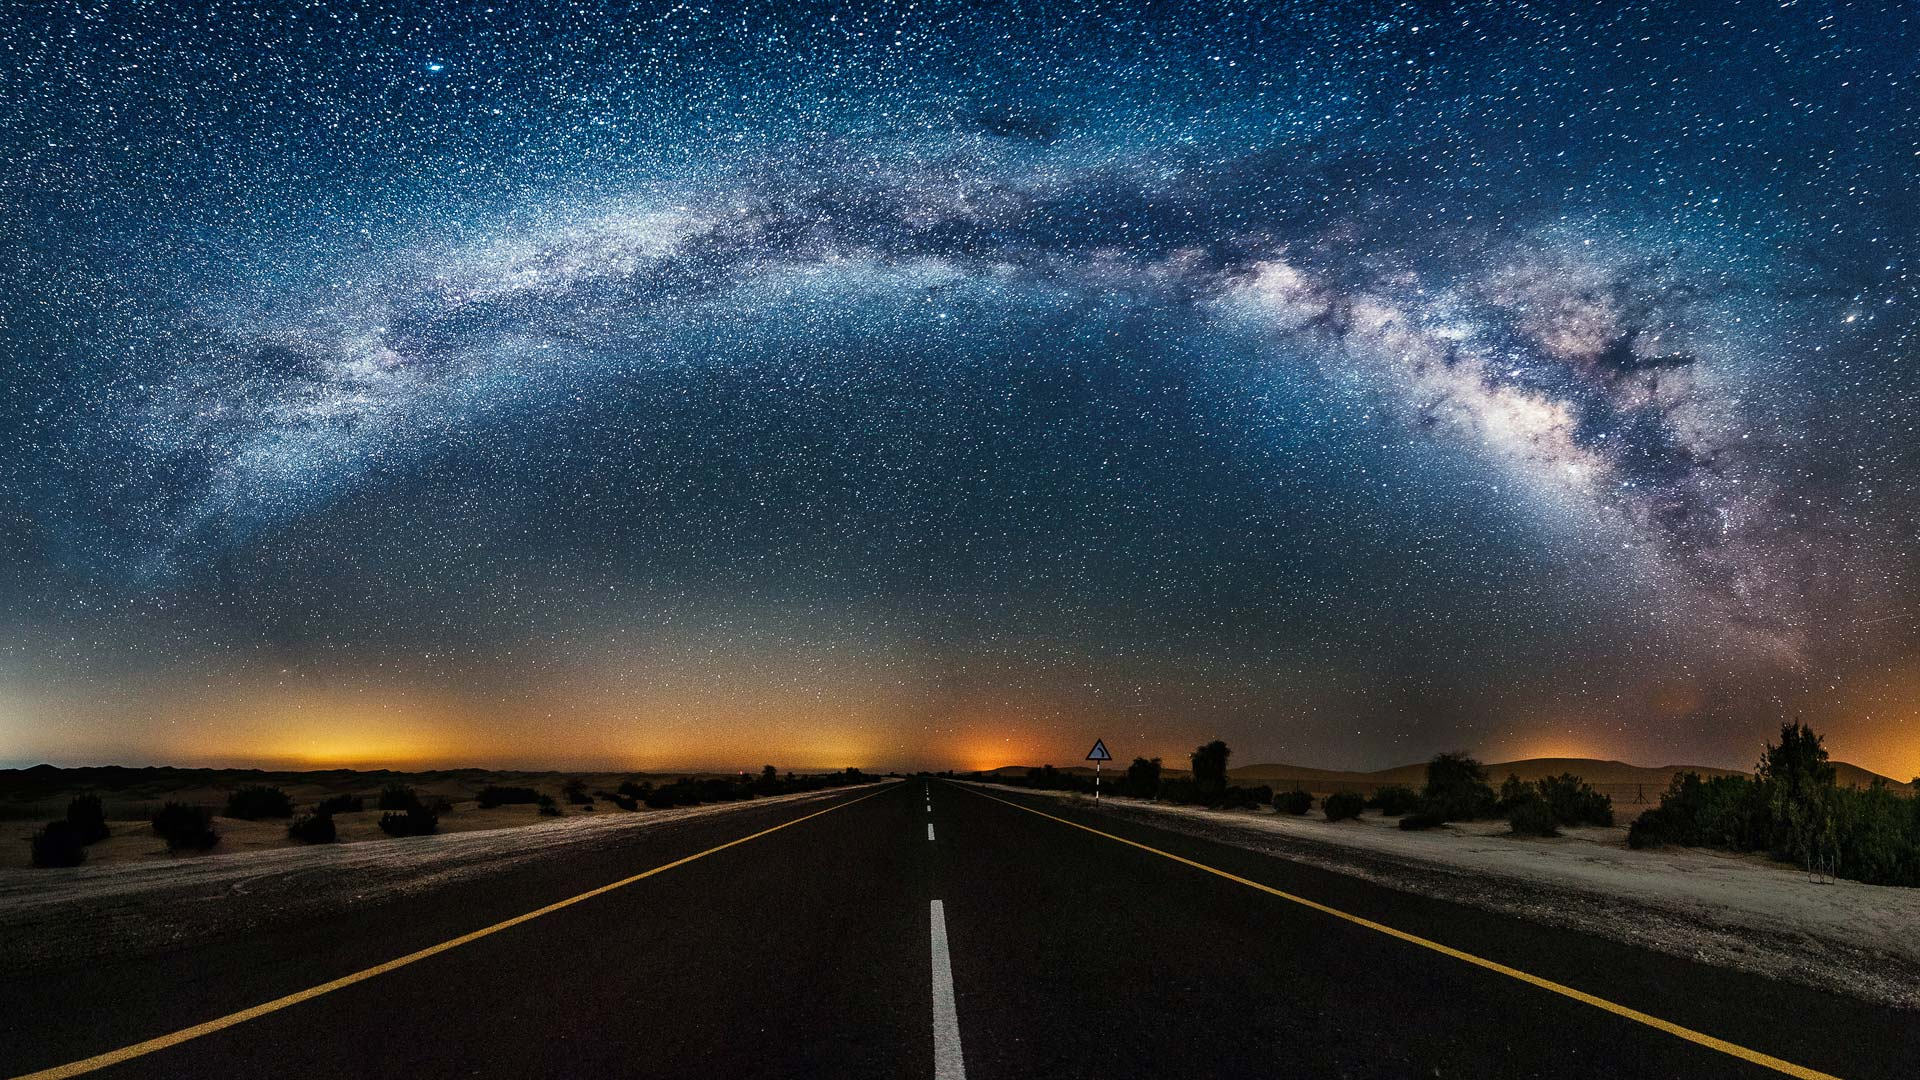 4k Wallpaper Beautiful Wallpaper Road